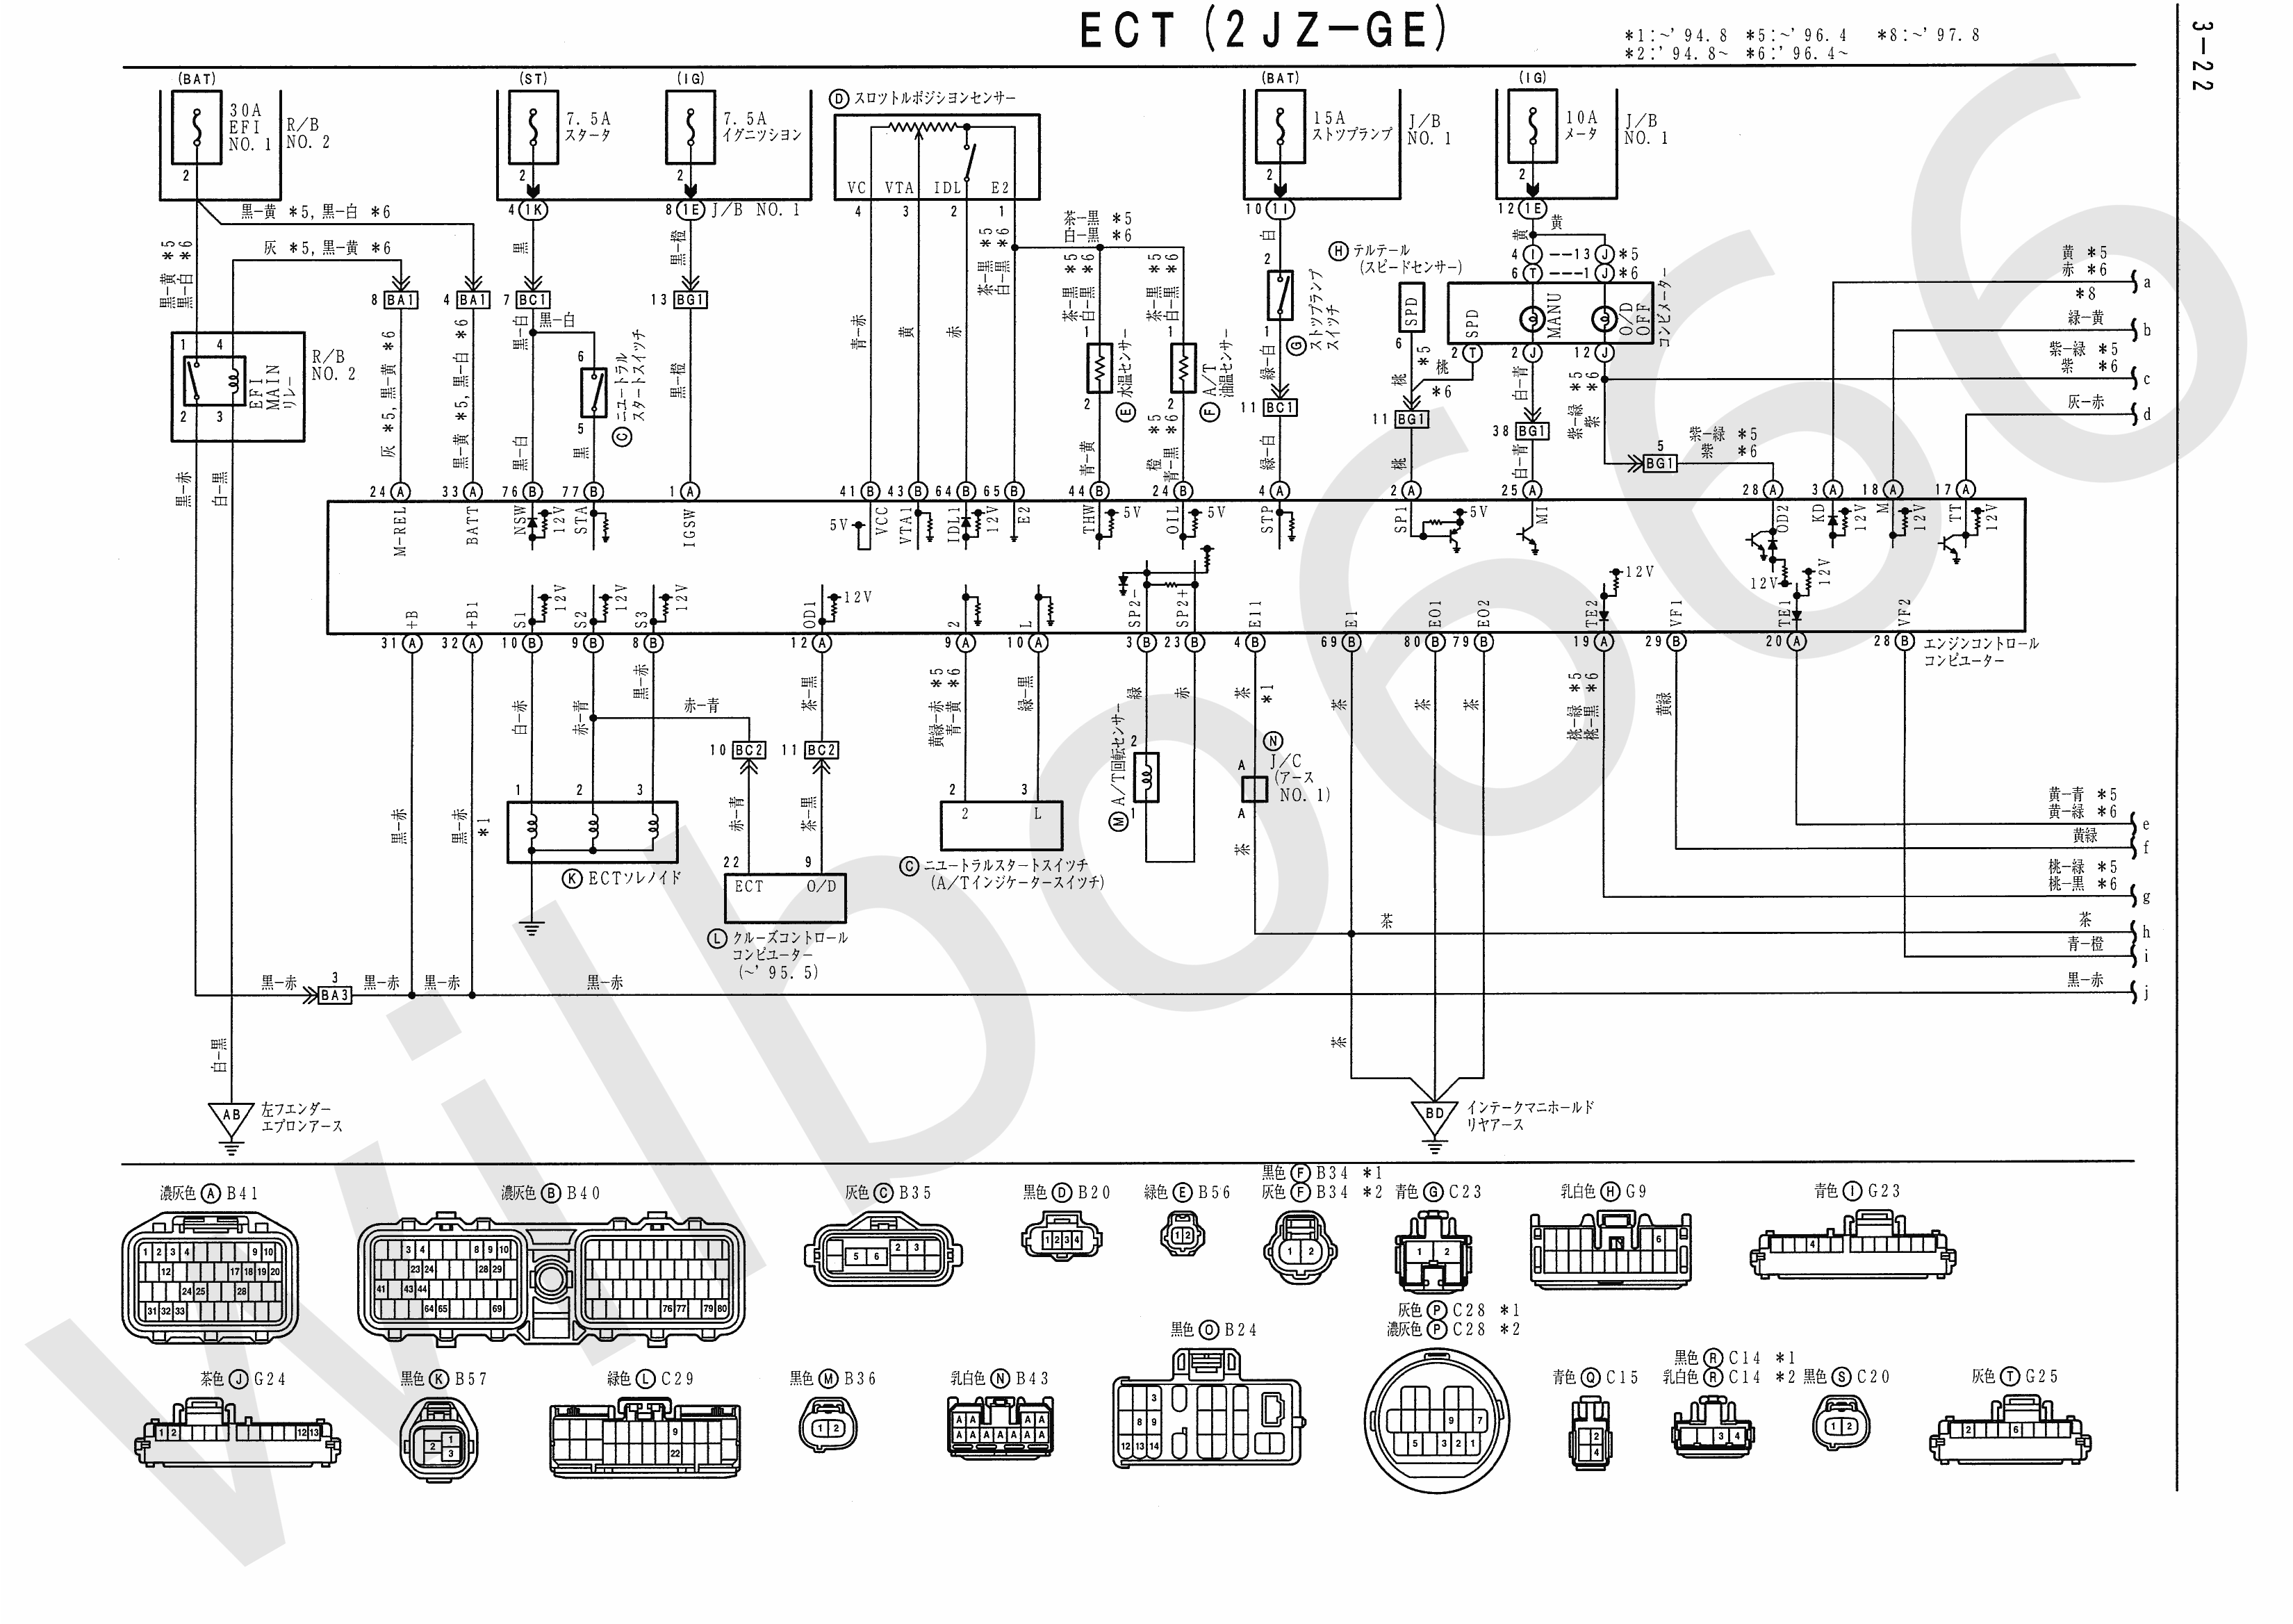 JZA80 Electrical Wiring Diagram 6742505 3 22 1991 mr2 wiring diagram 1991 toyota mr2 fuse box diagram \u2022 wiring toyota supra fuse box diagram at readyjetset.co